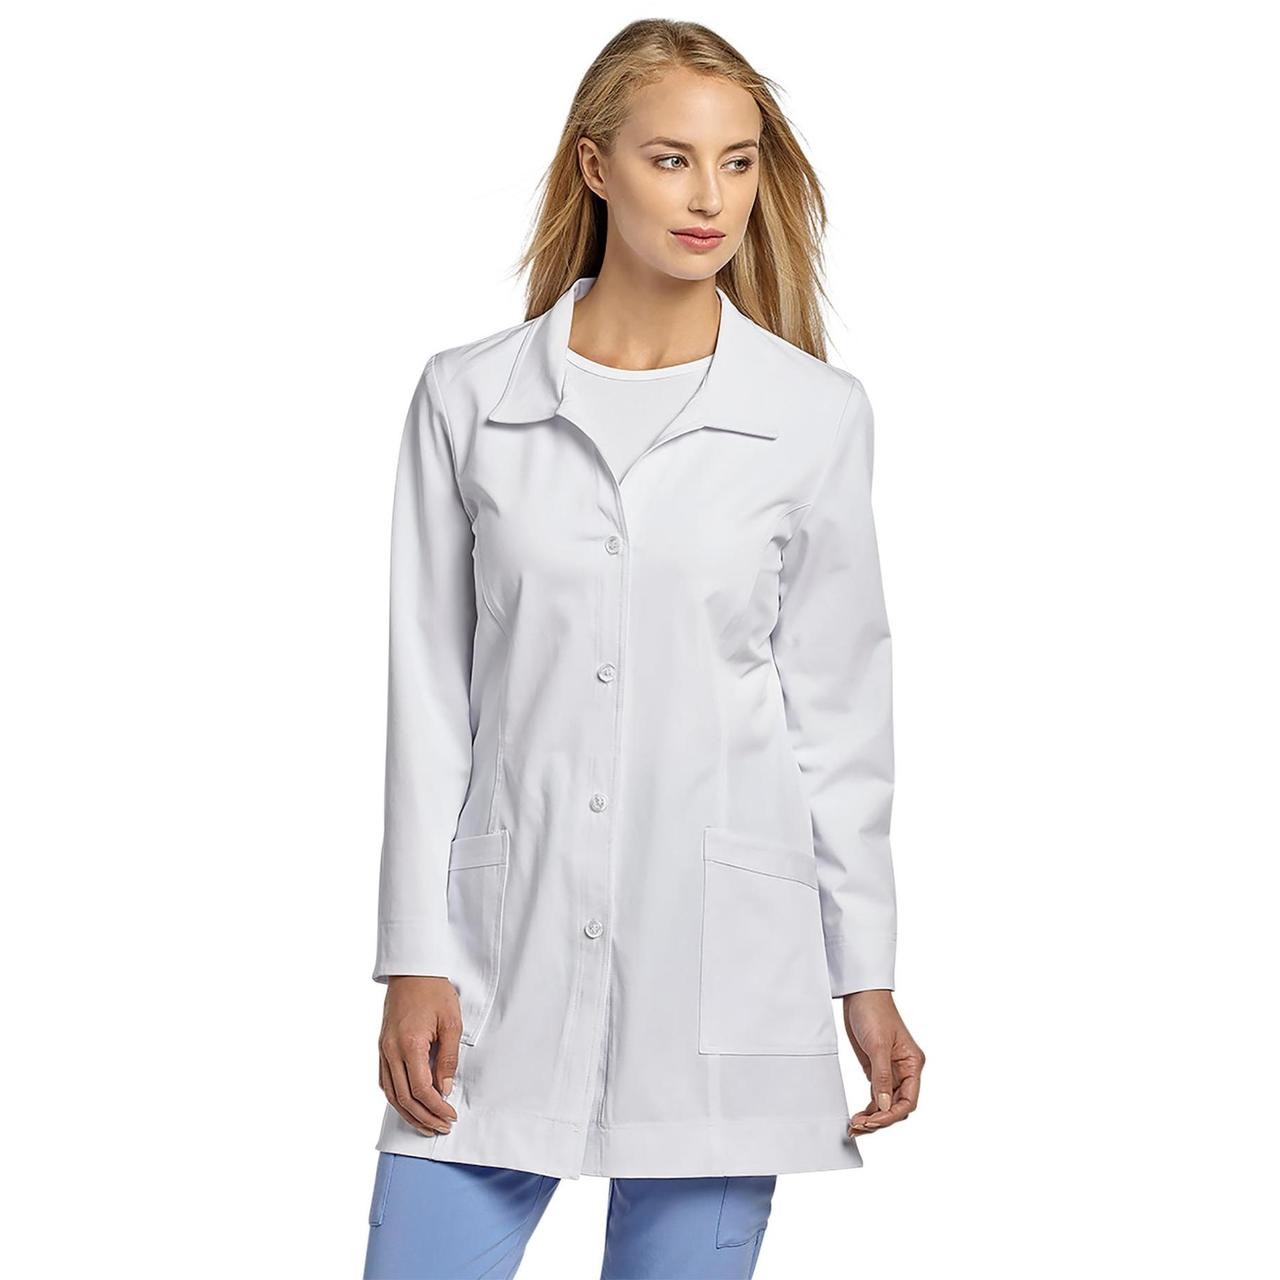 White Cross 4 Button Labcoat with Princess Seam